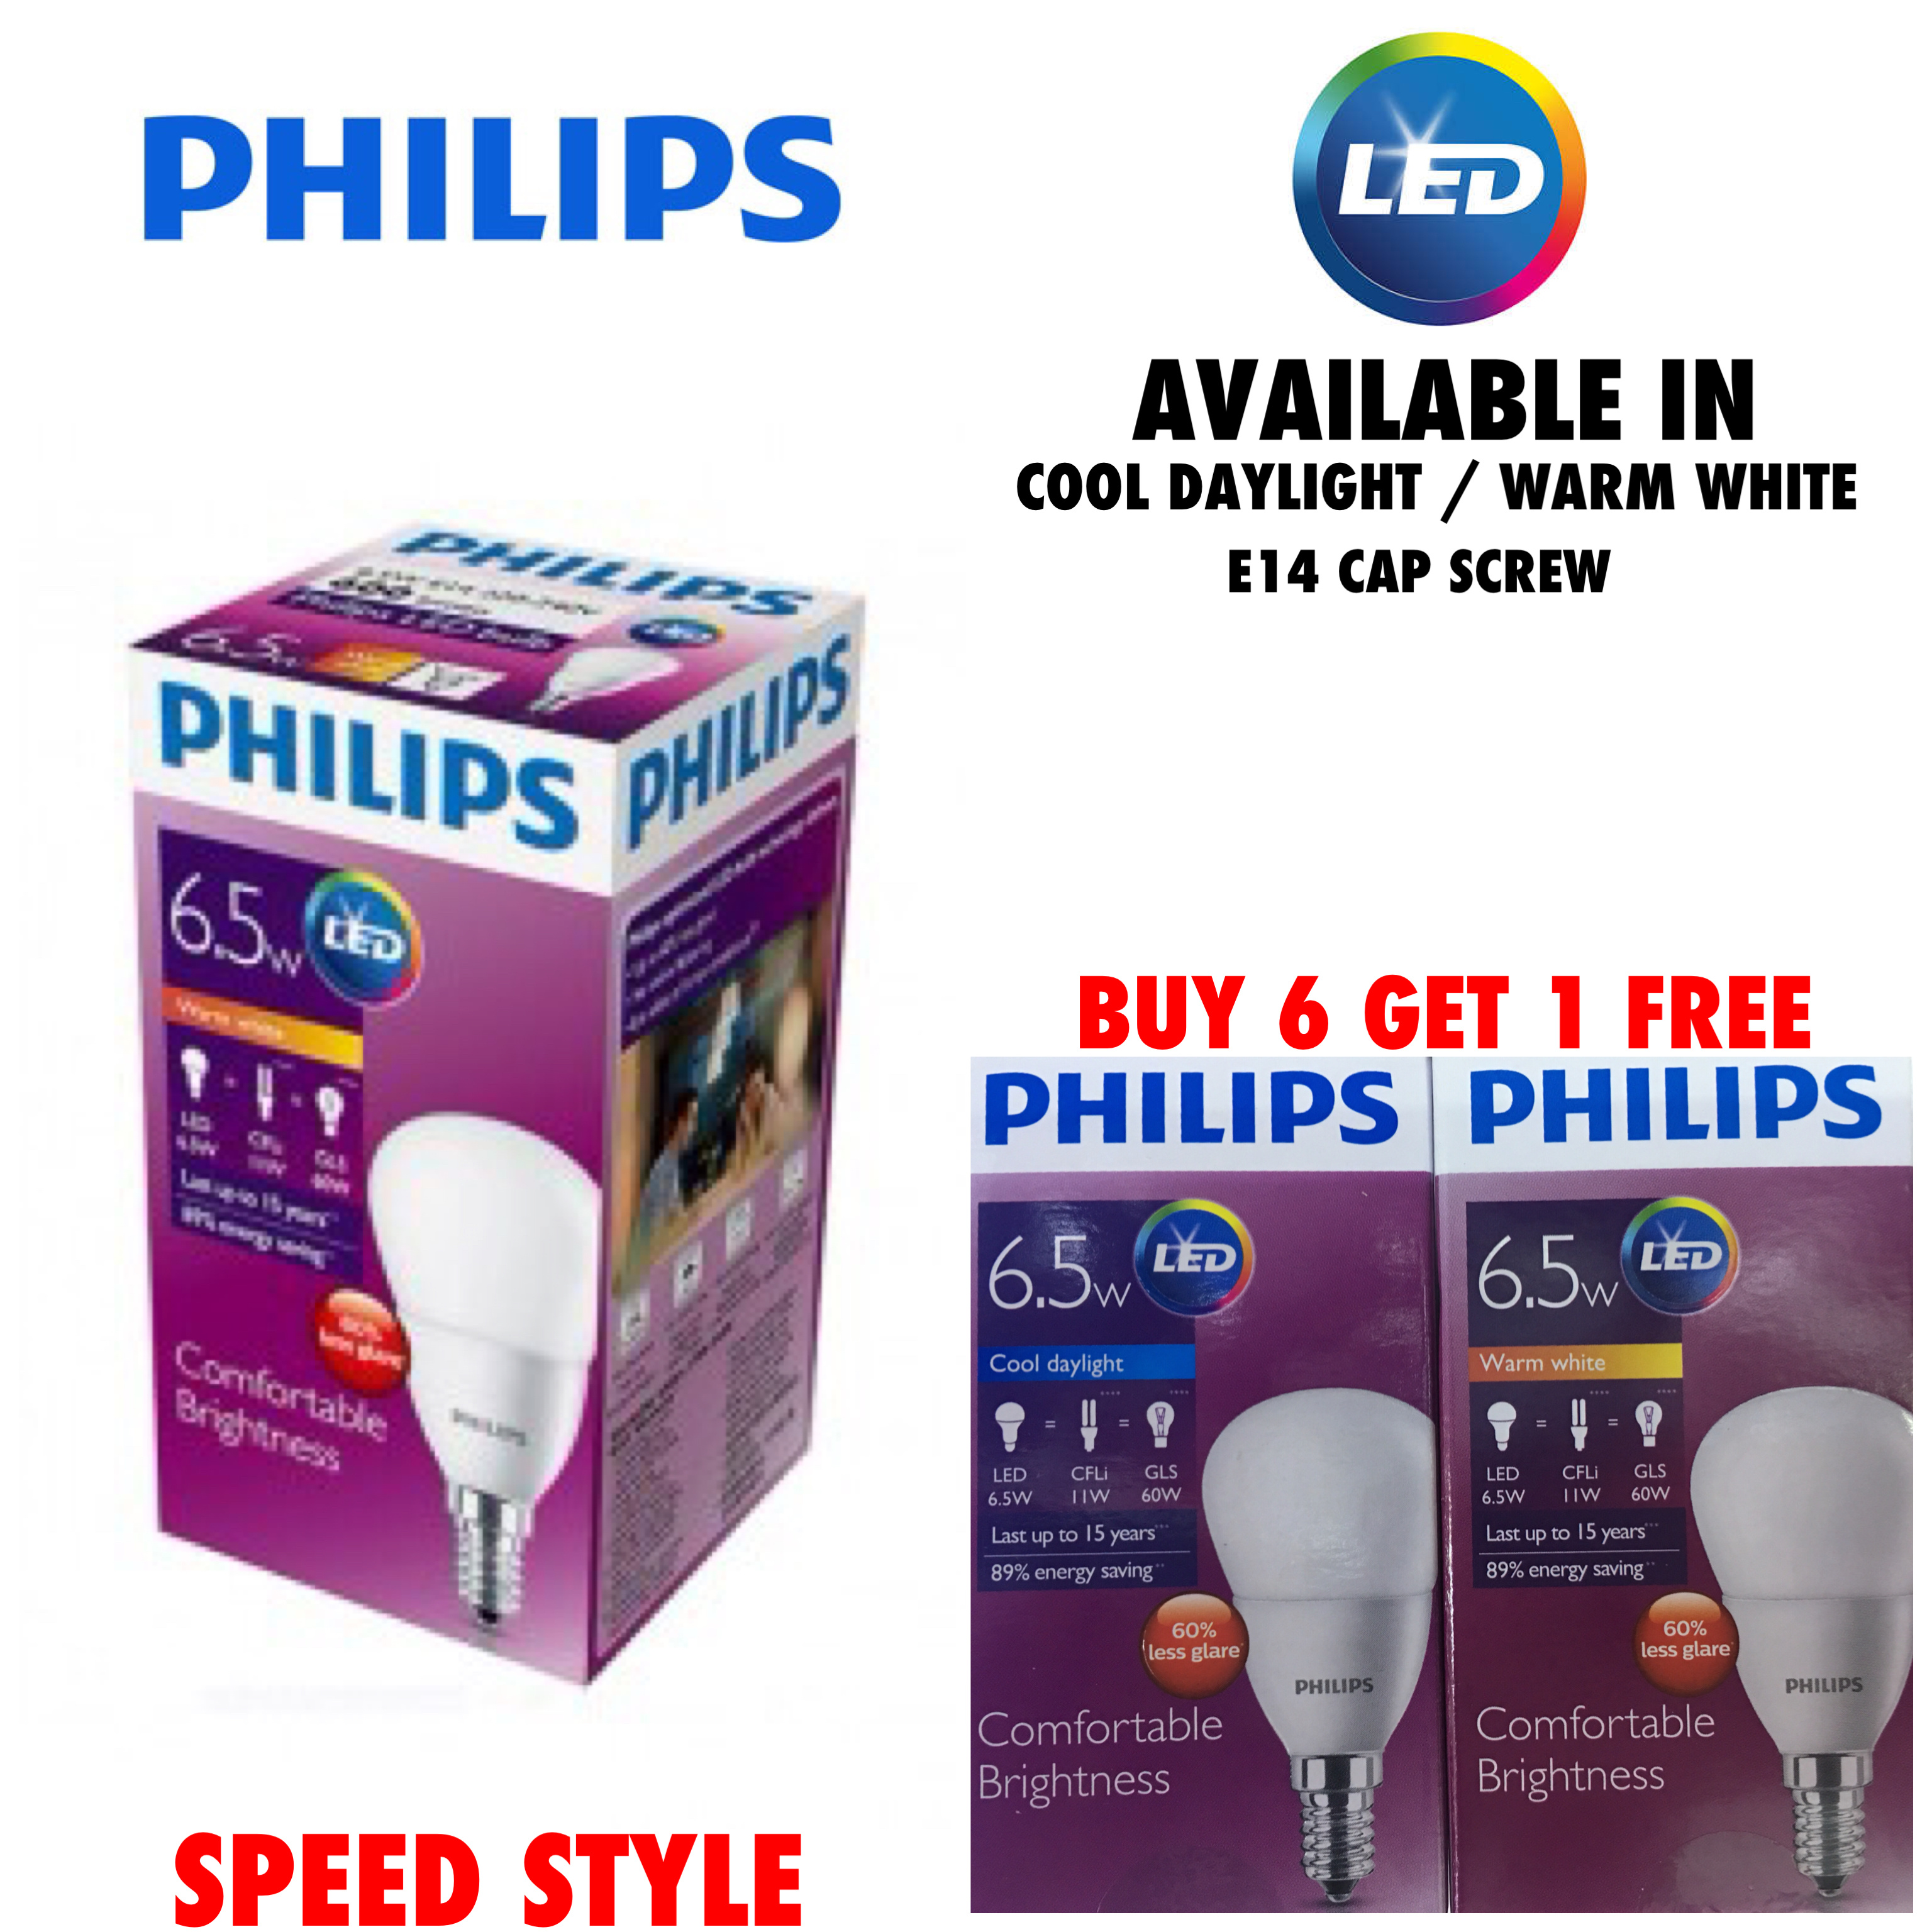 actual size with philips e14 led. actual size with philips e14 led .